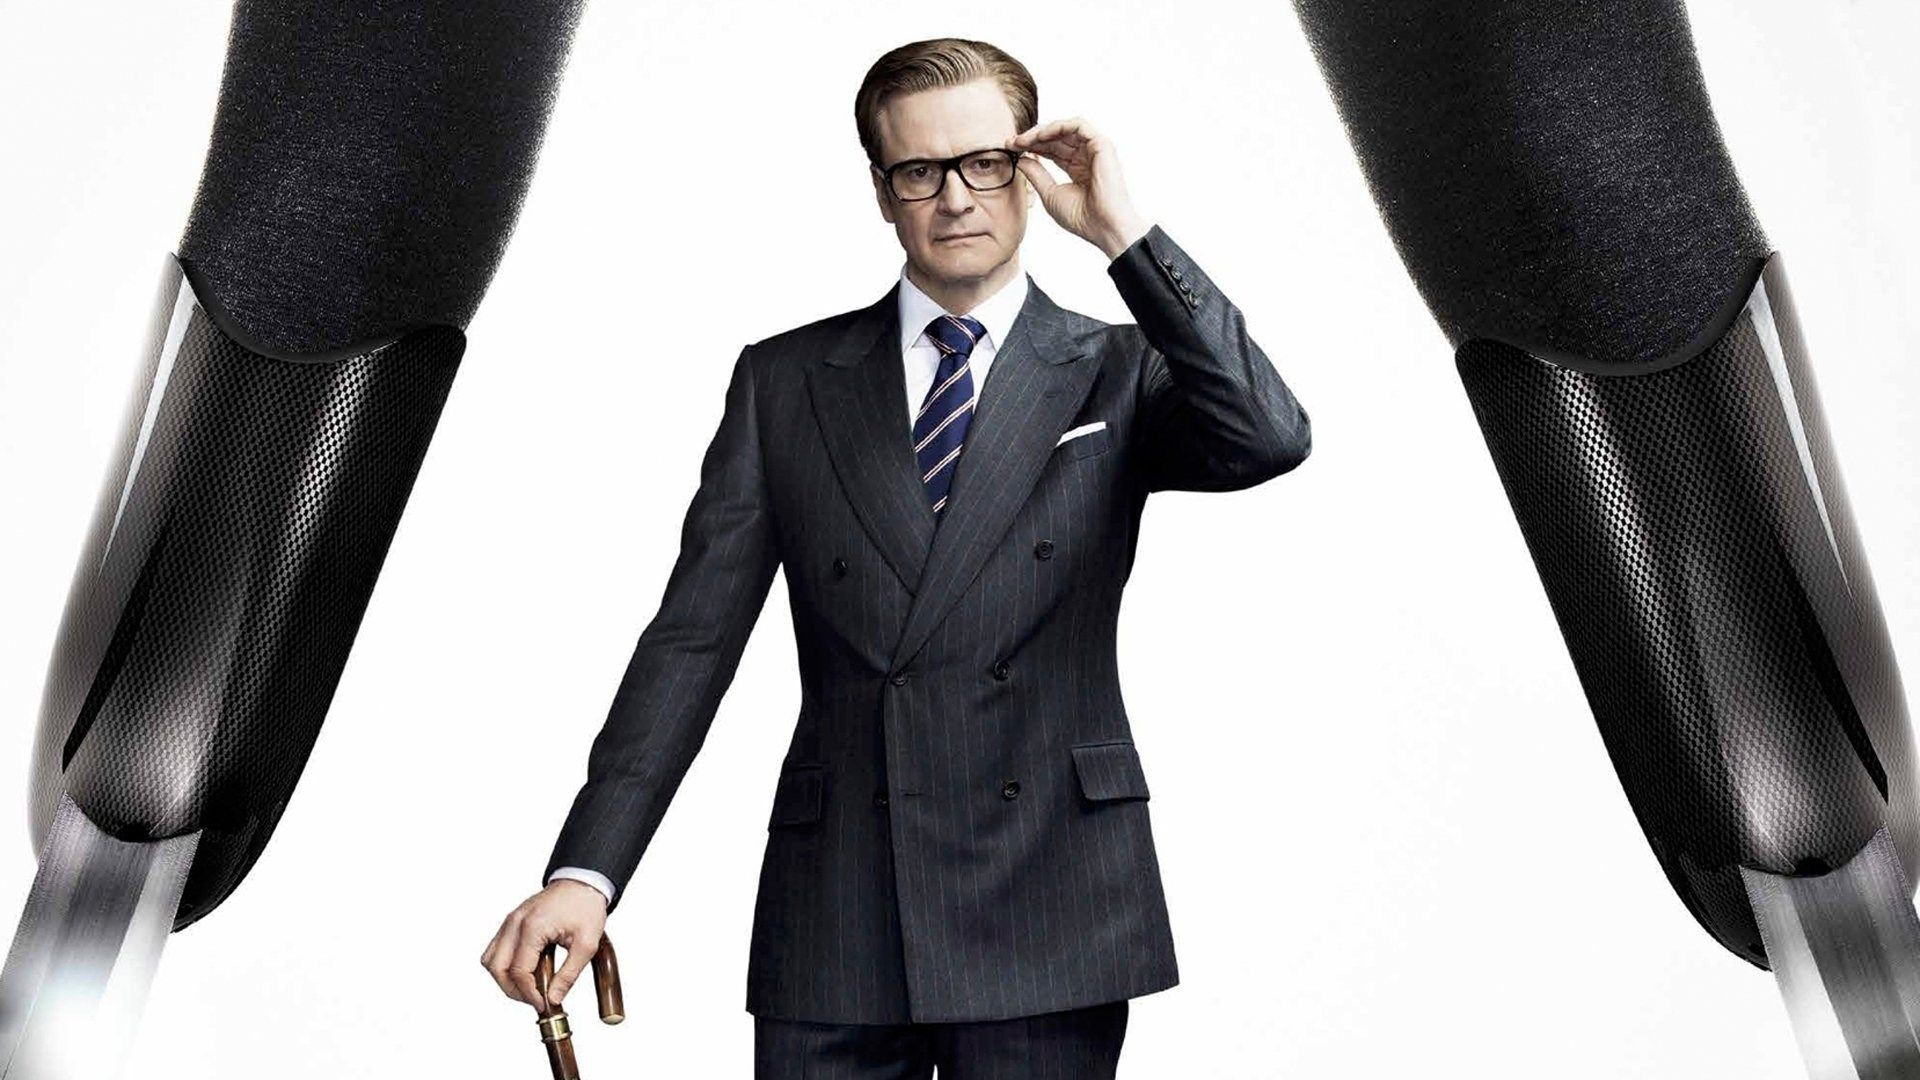 Res: 1920x1080, kingsman the secret service wallpaper: Full HD Pictures by Ritter  Nash-Williams (2017